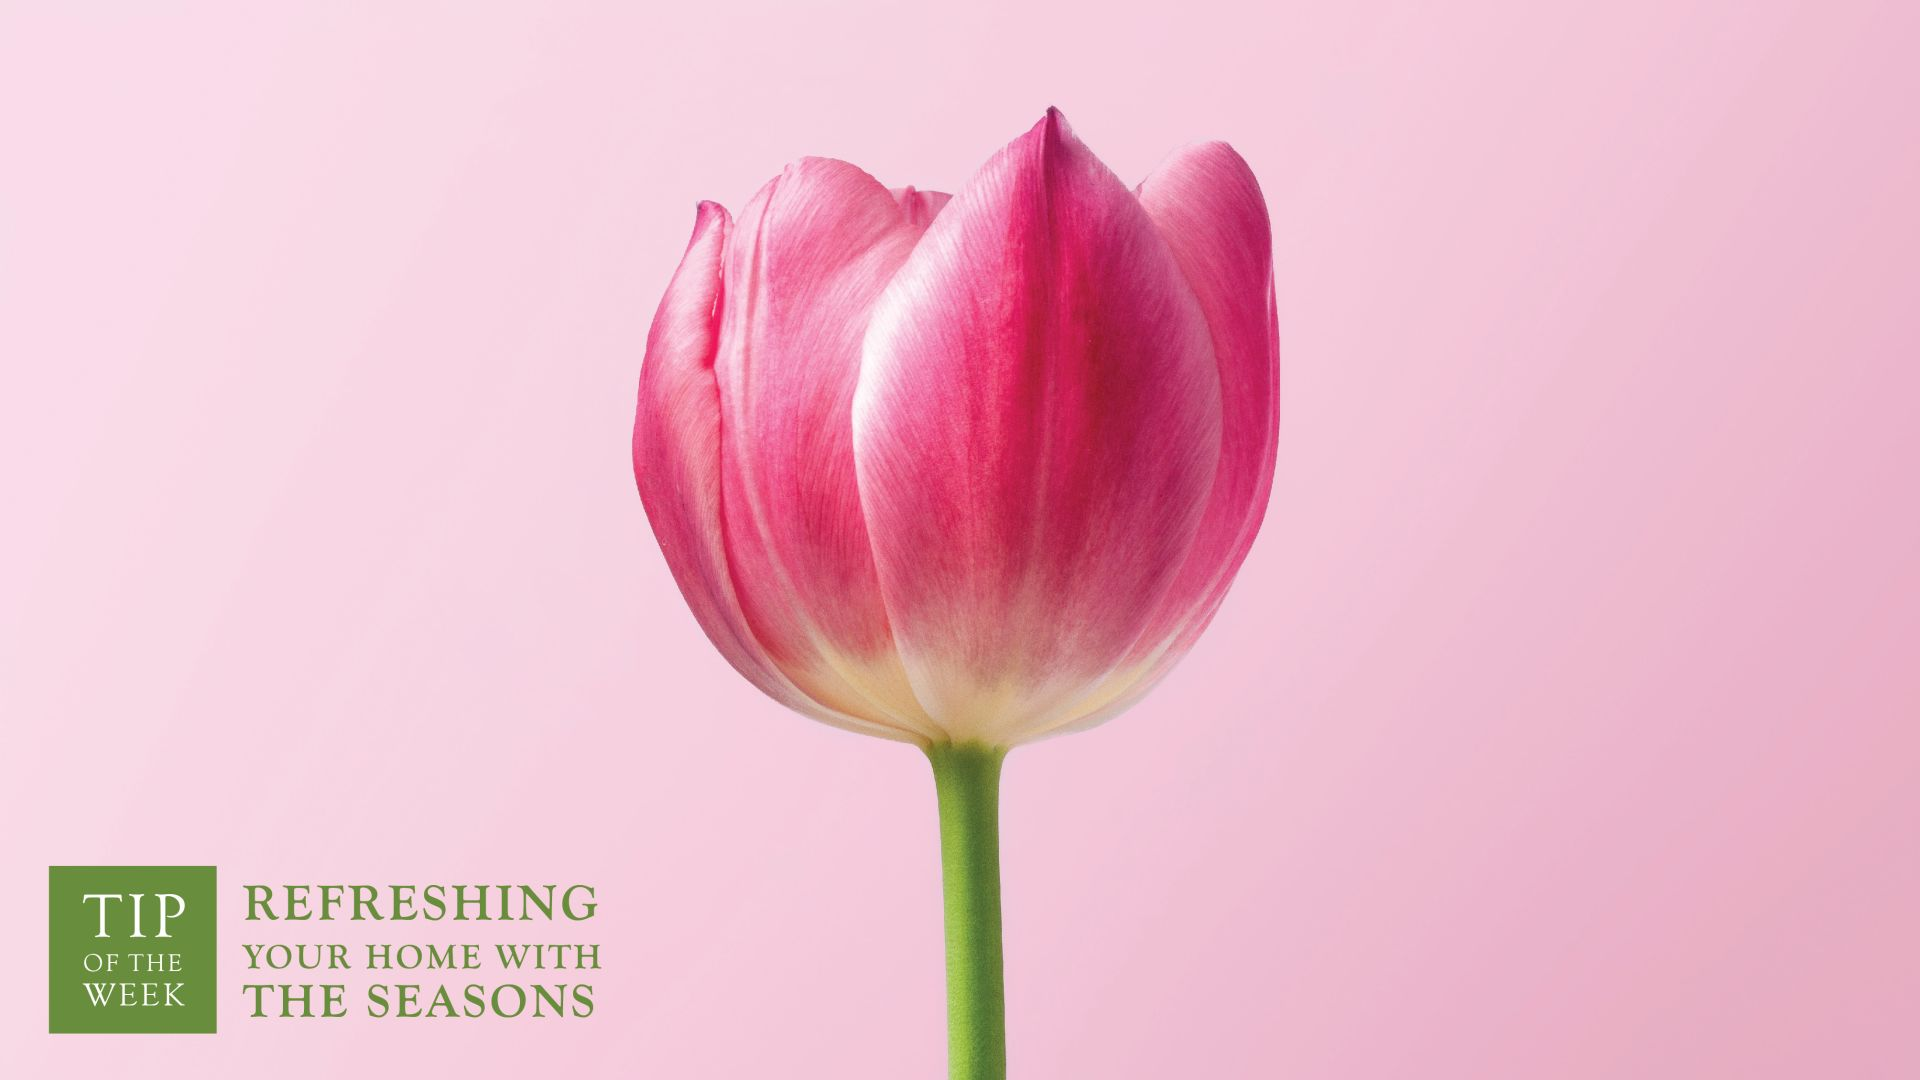 Refreshing Your Home With The Seasons